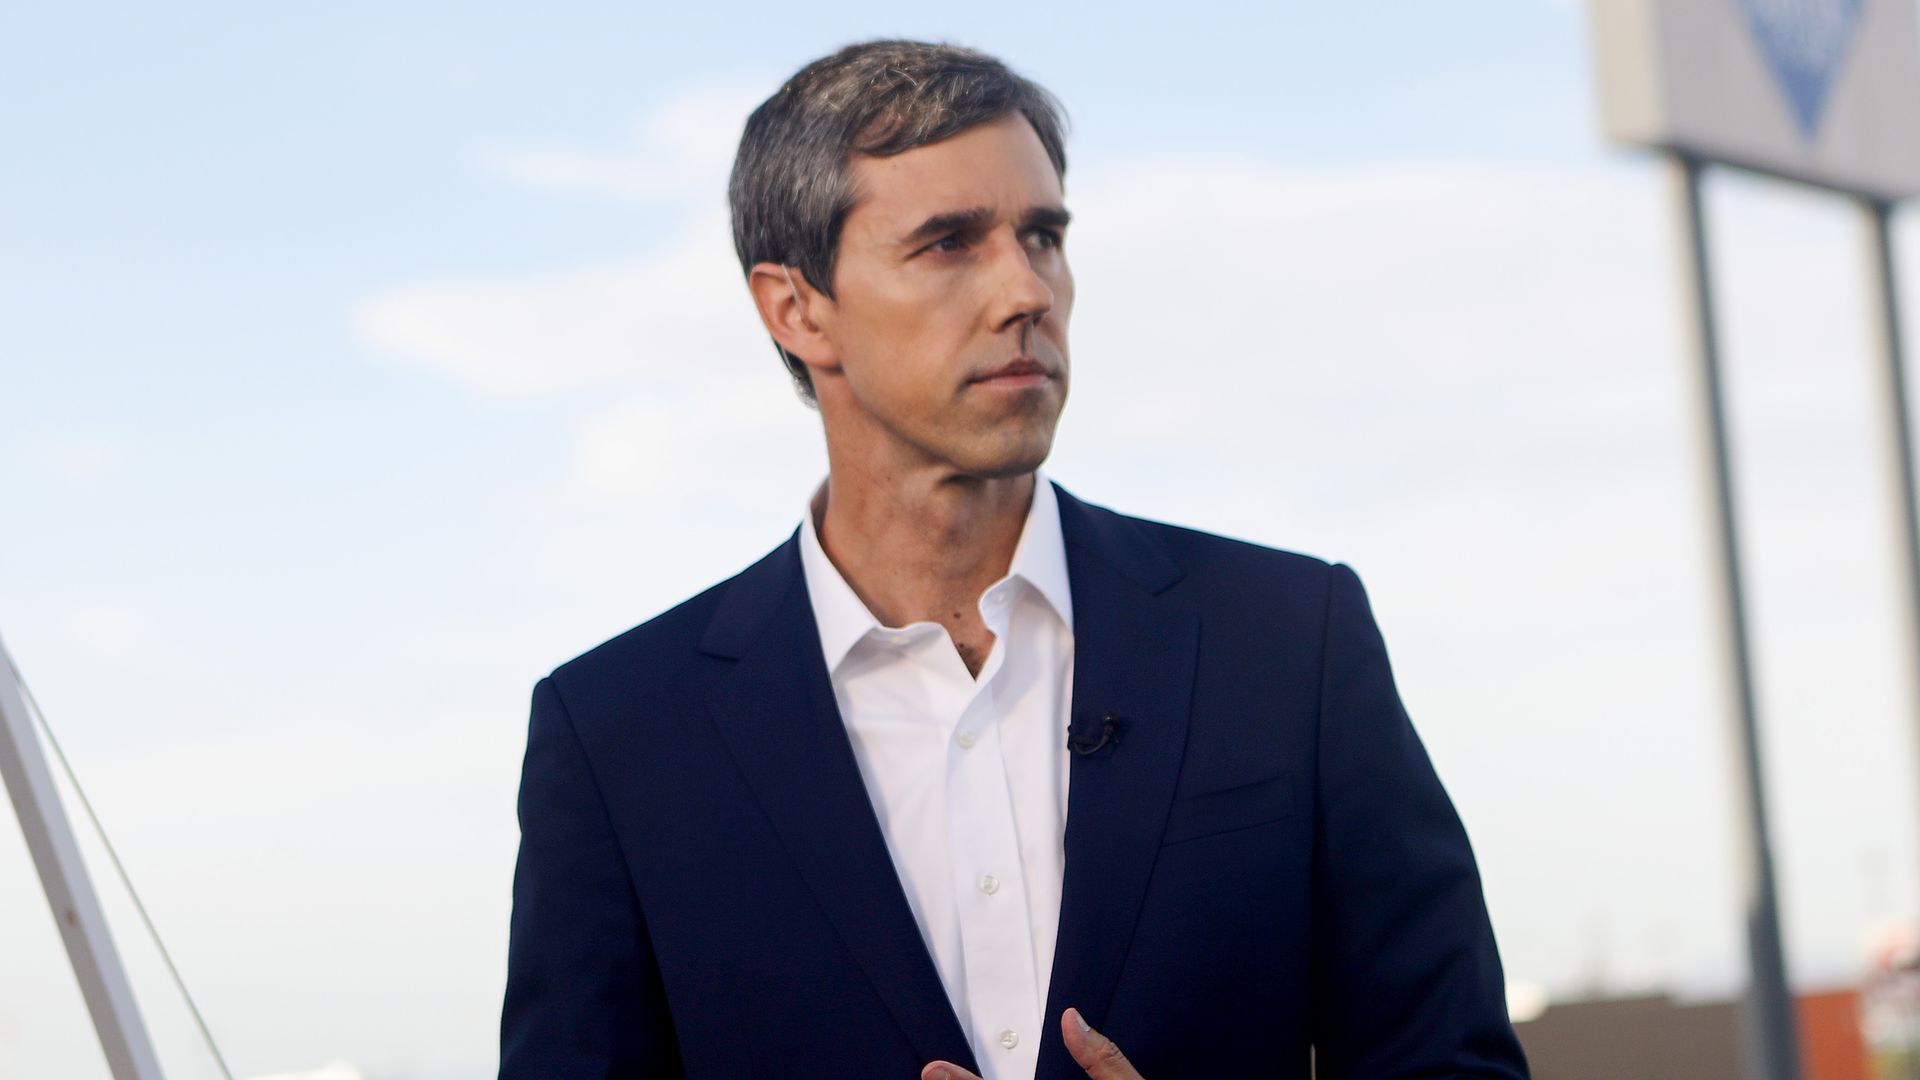 Beto standing and looking to the side.